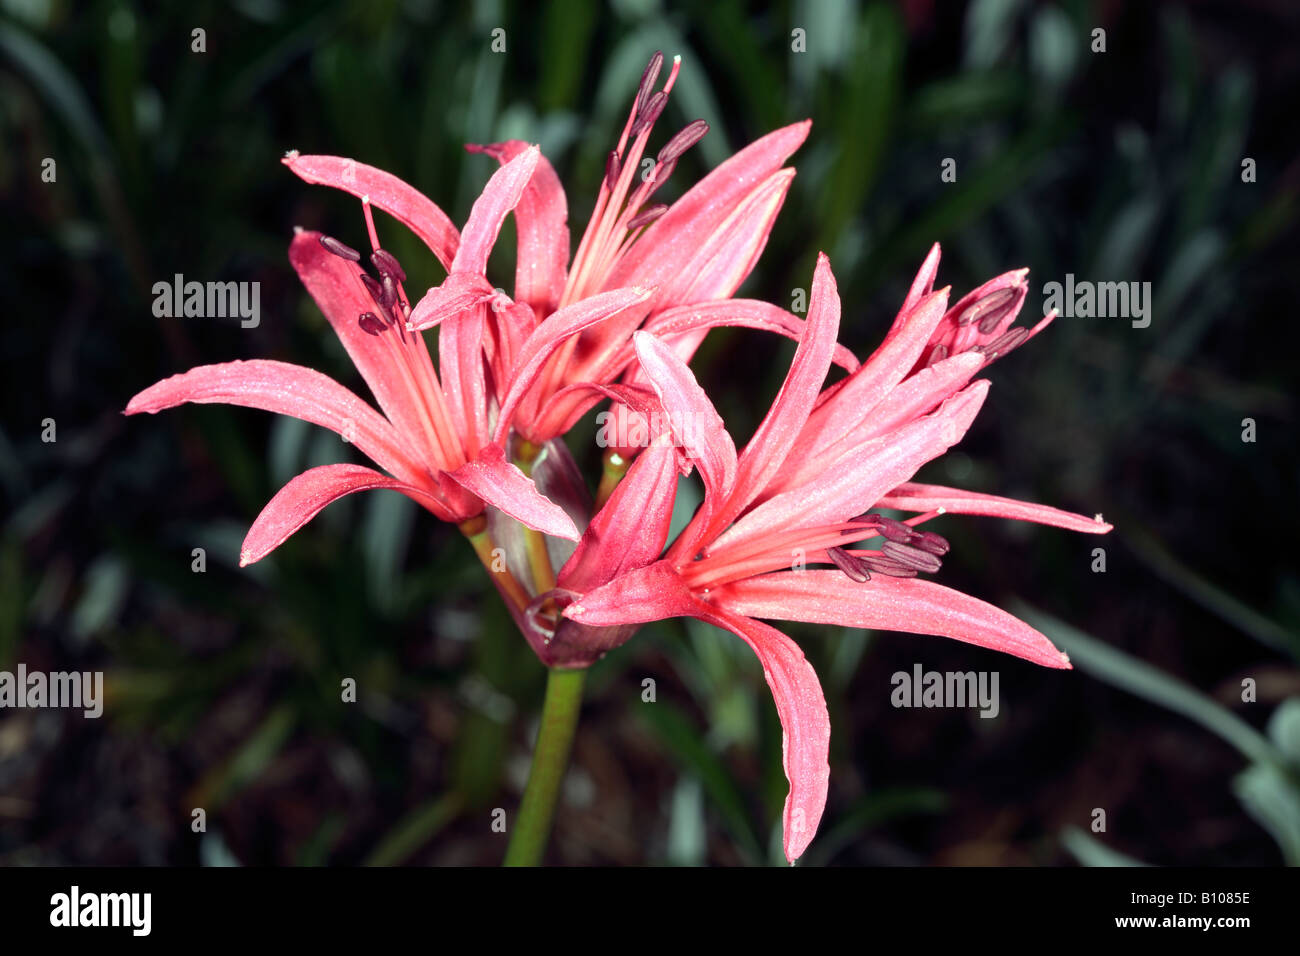 Red Nerina/RED Nerine/Guernsey Lily-Nerine sarniensis-Family Amaryllidaceae - Stock Image